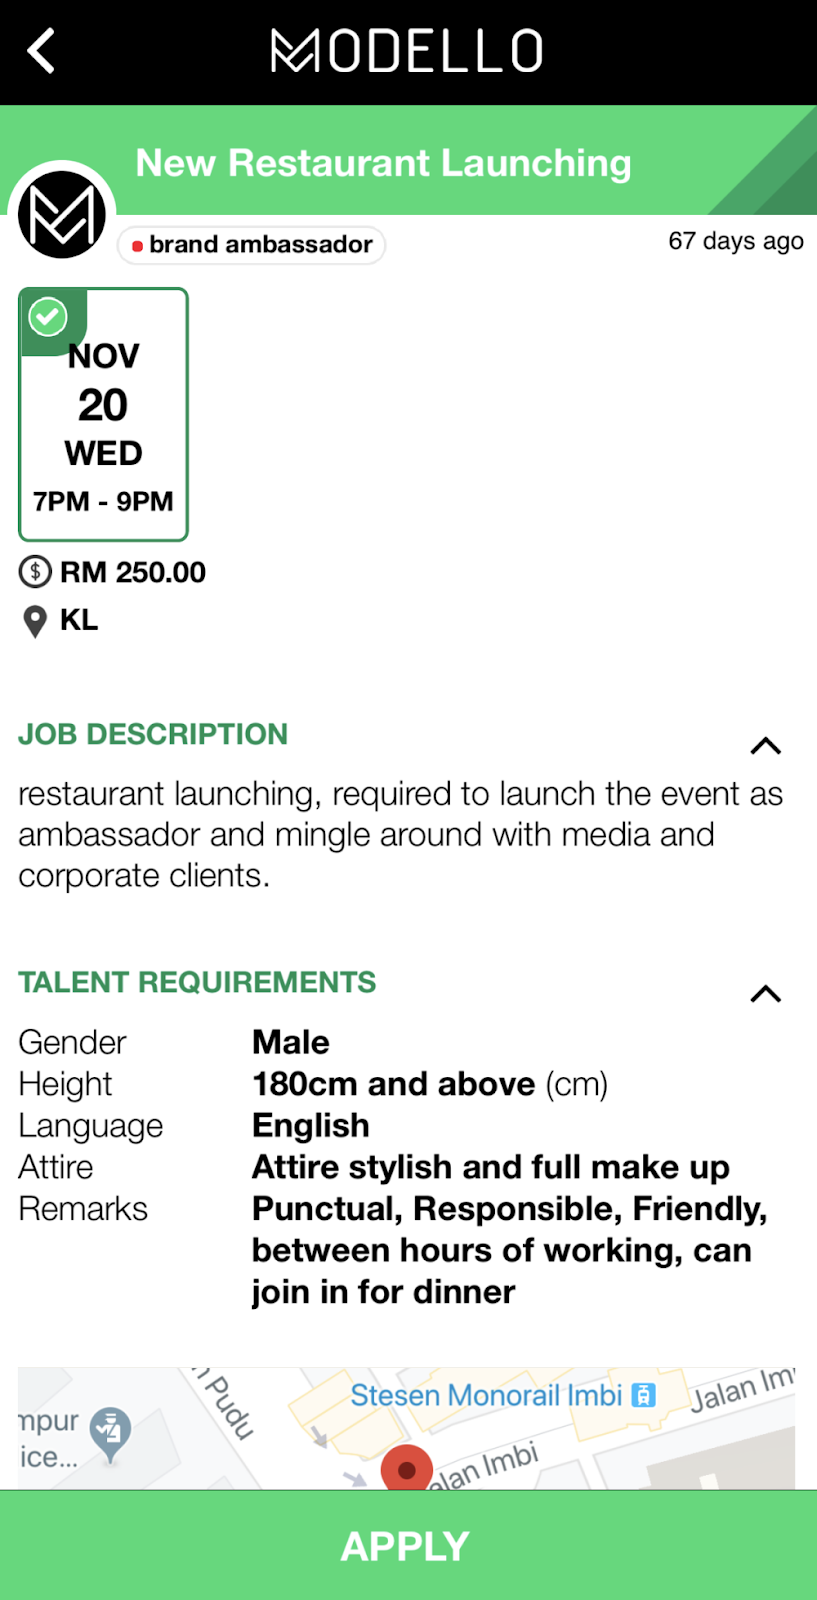 Modello, talent recruiter, online talent recruitment, find talents in Malaysia, Rawlins GLAM, extra income, Rawlins Tech,